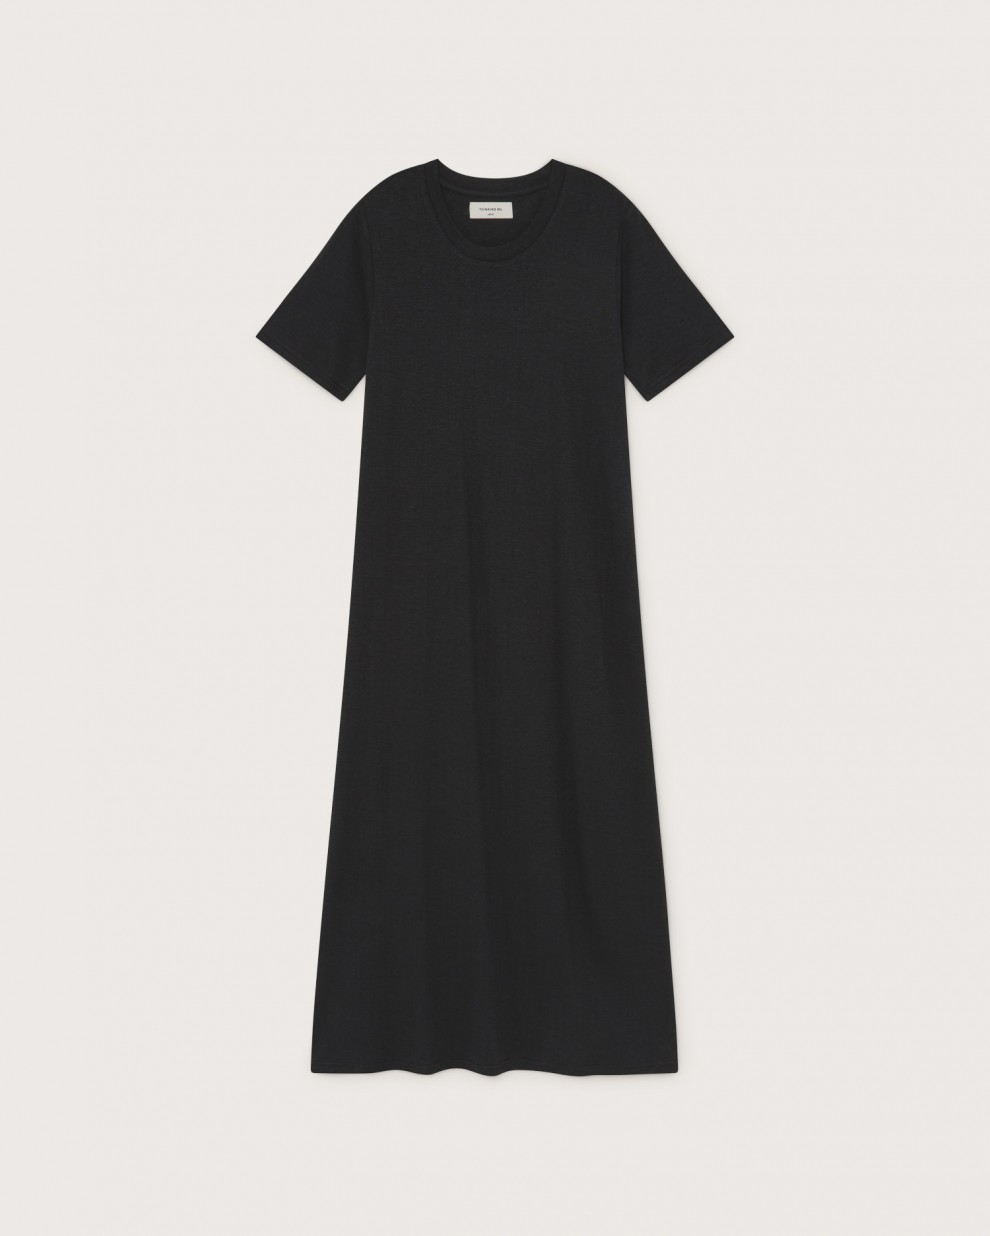 Phantom hemp Oueme dress